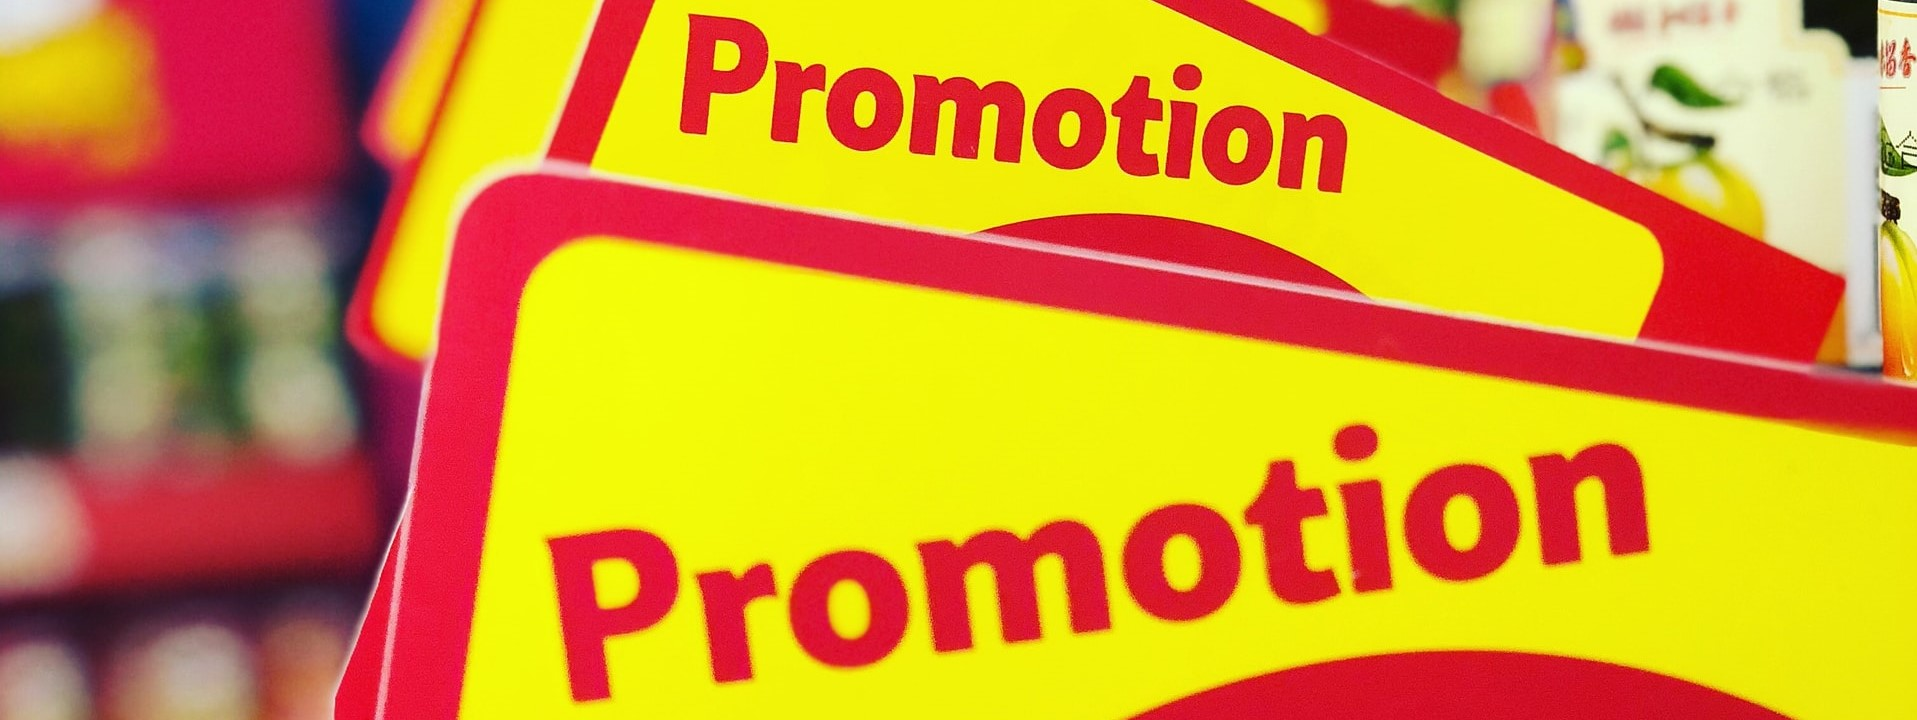 You are currently viewing Worldclips Promotion